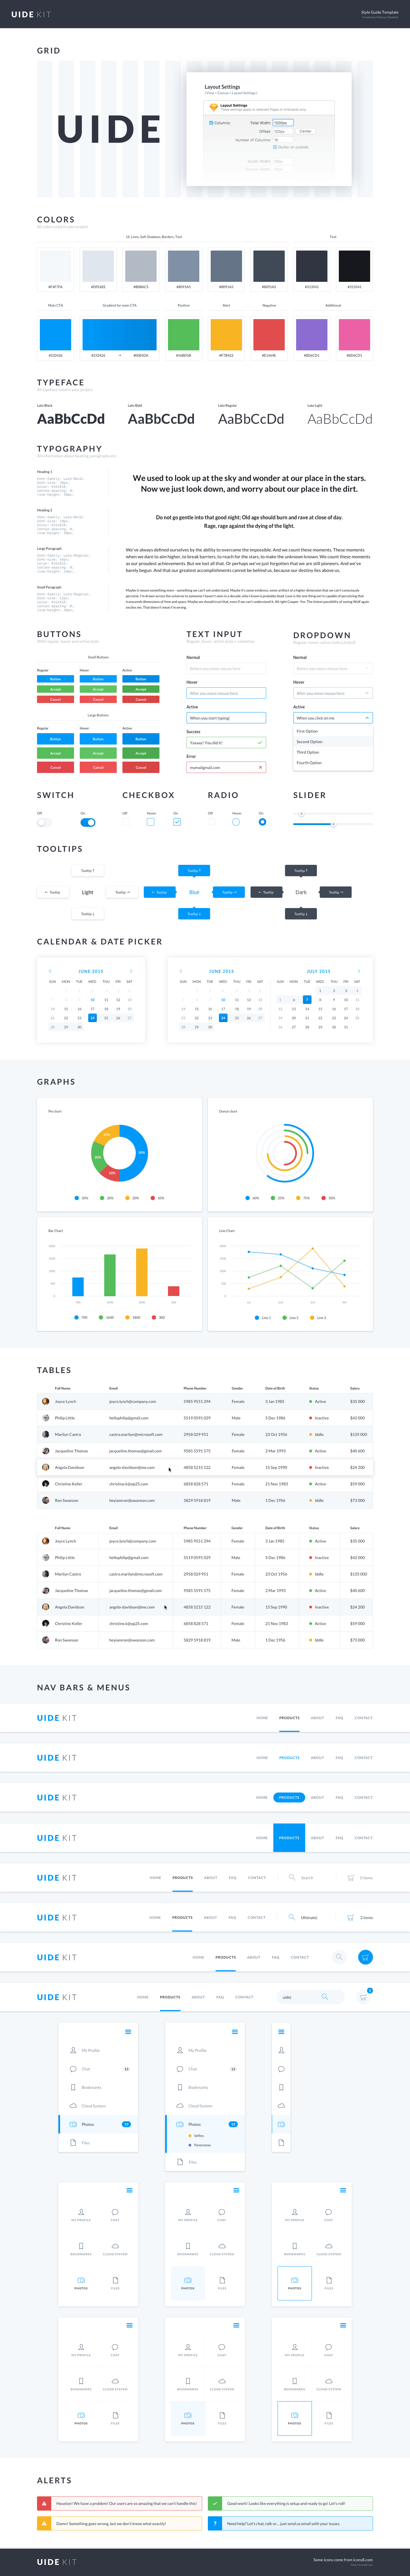 UIDE Style Guide UI Kit from UIGarage